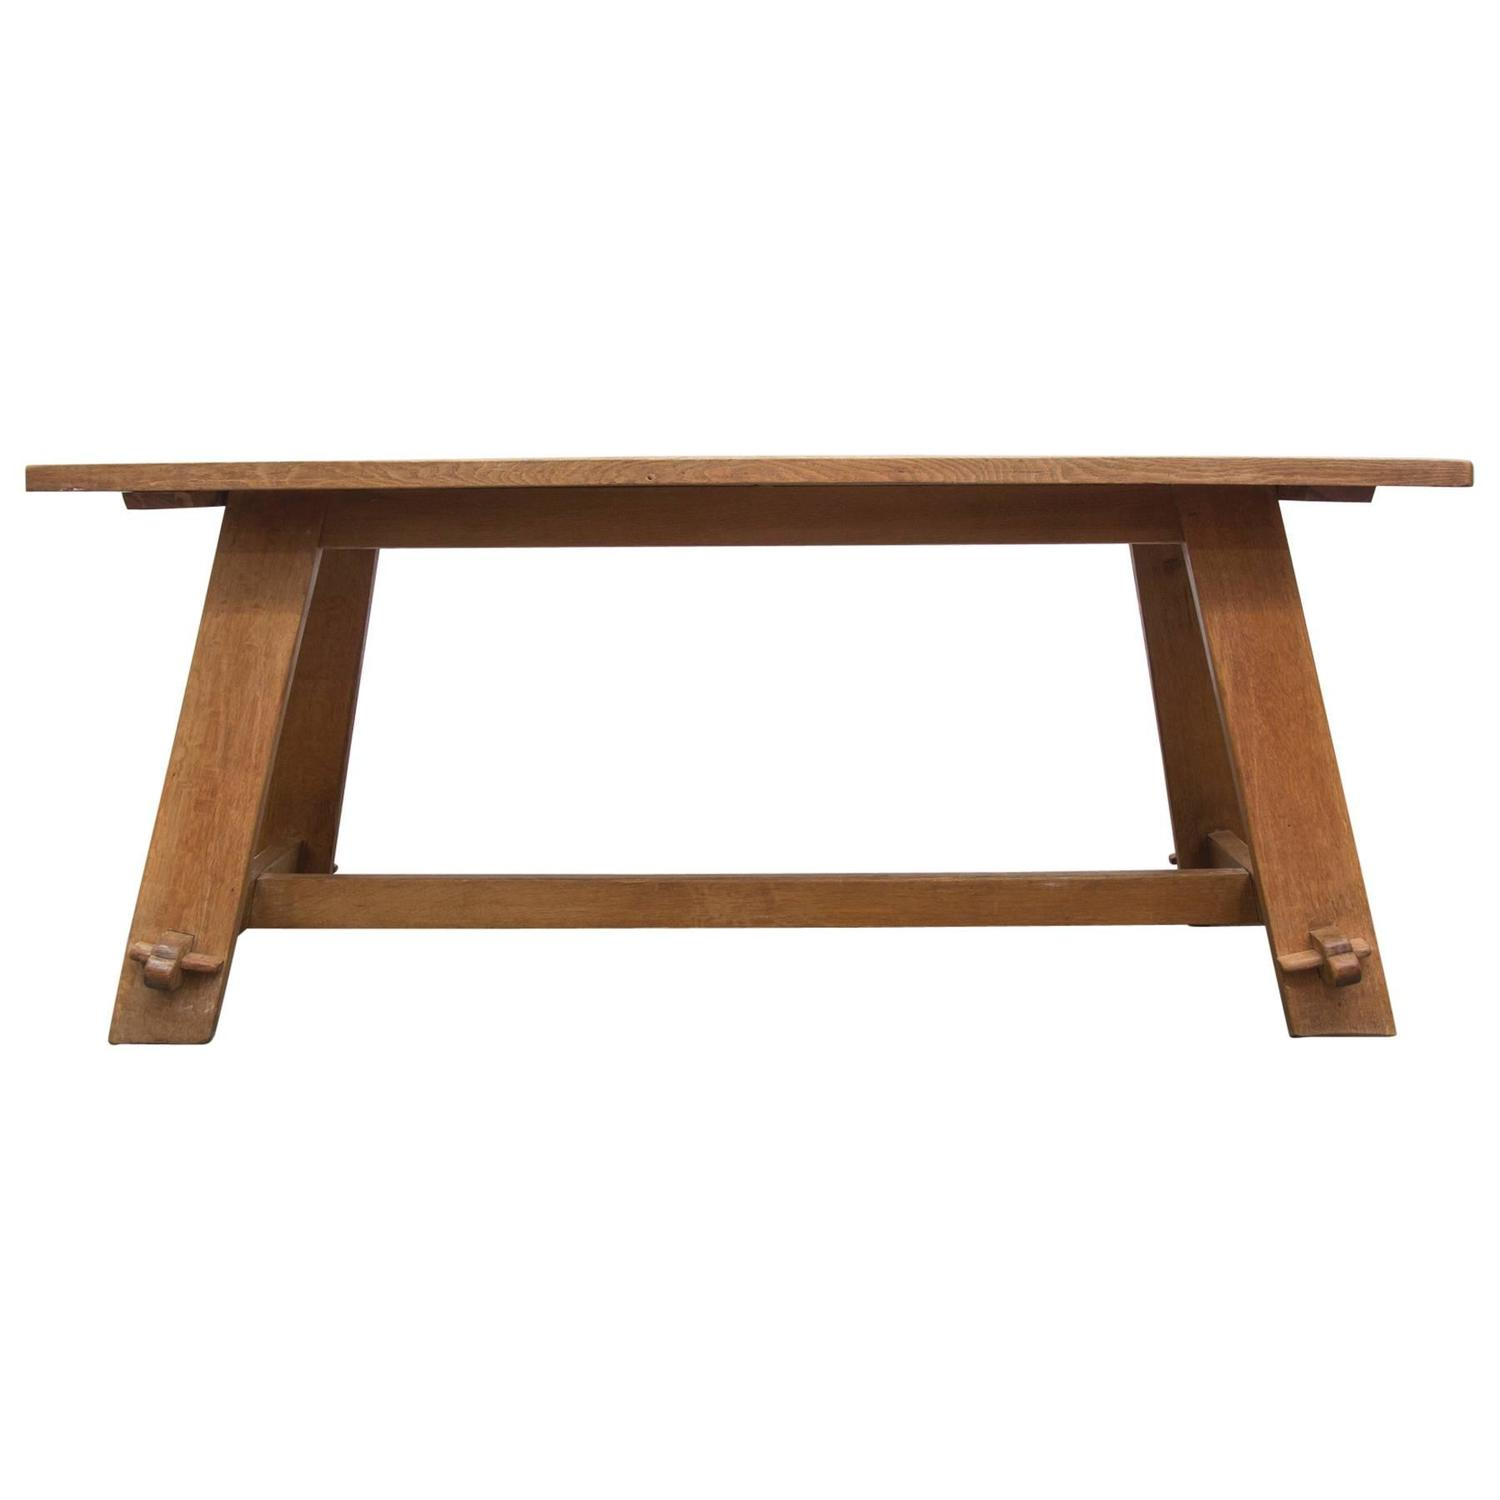 Solid oak trestle dining table at 1stdibs Trestle dining table